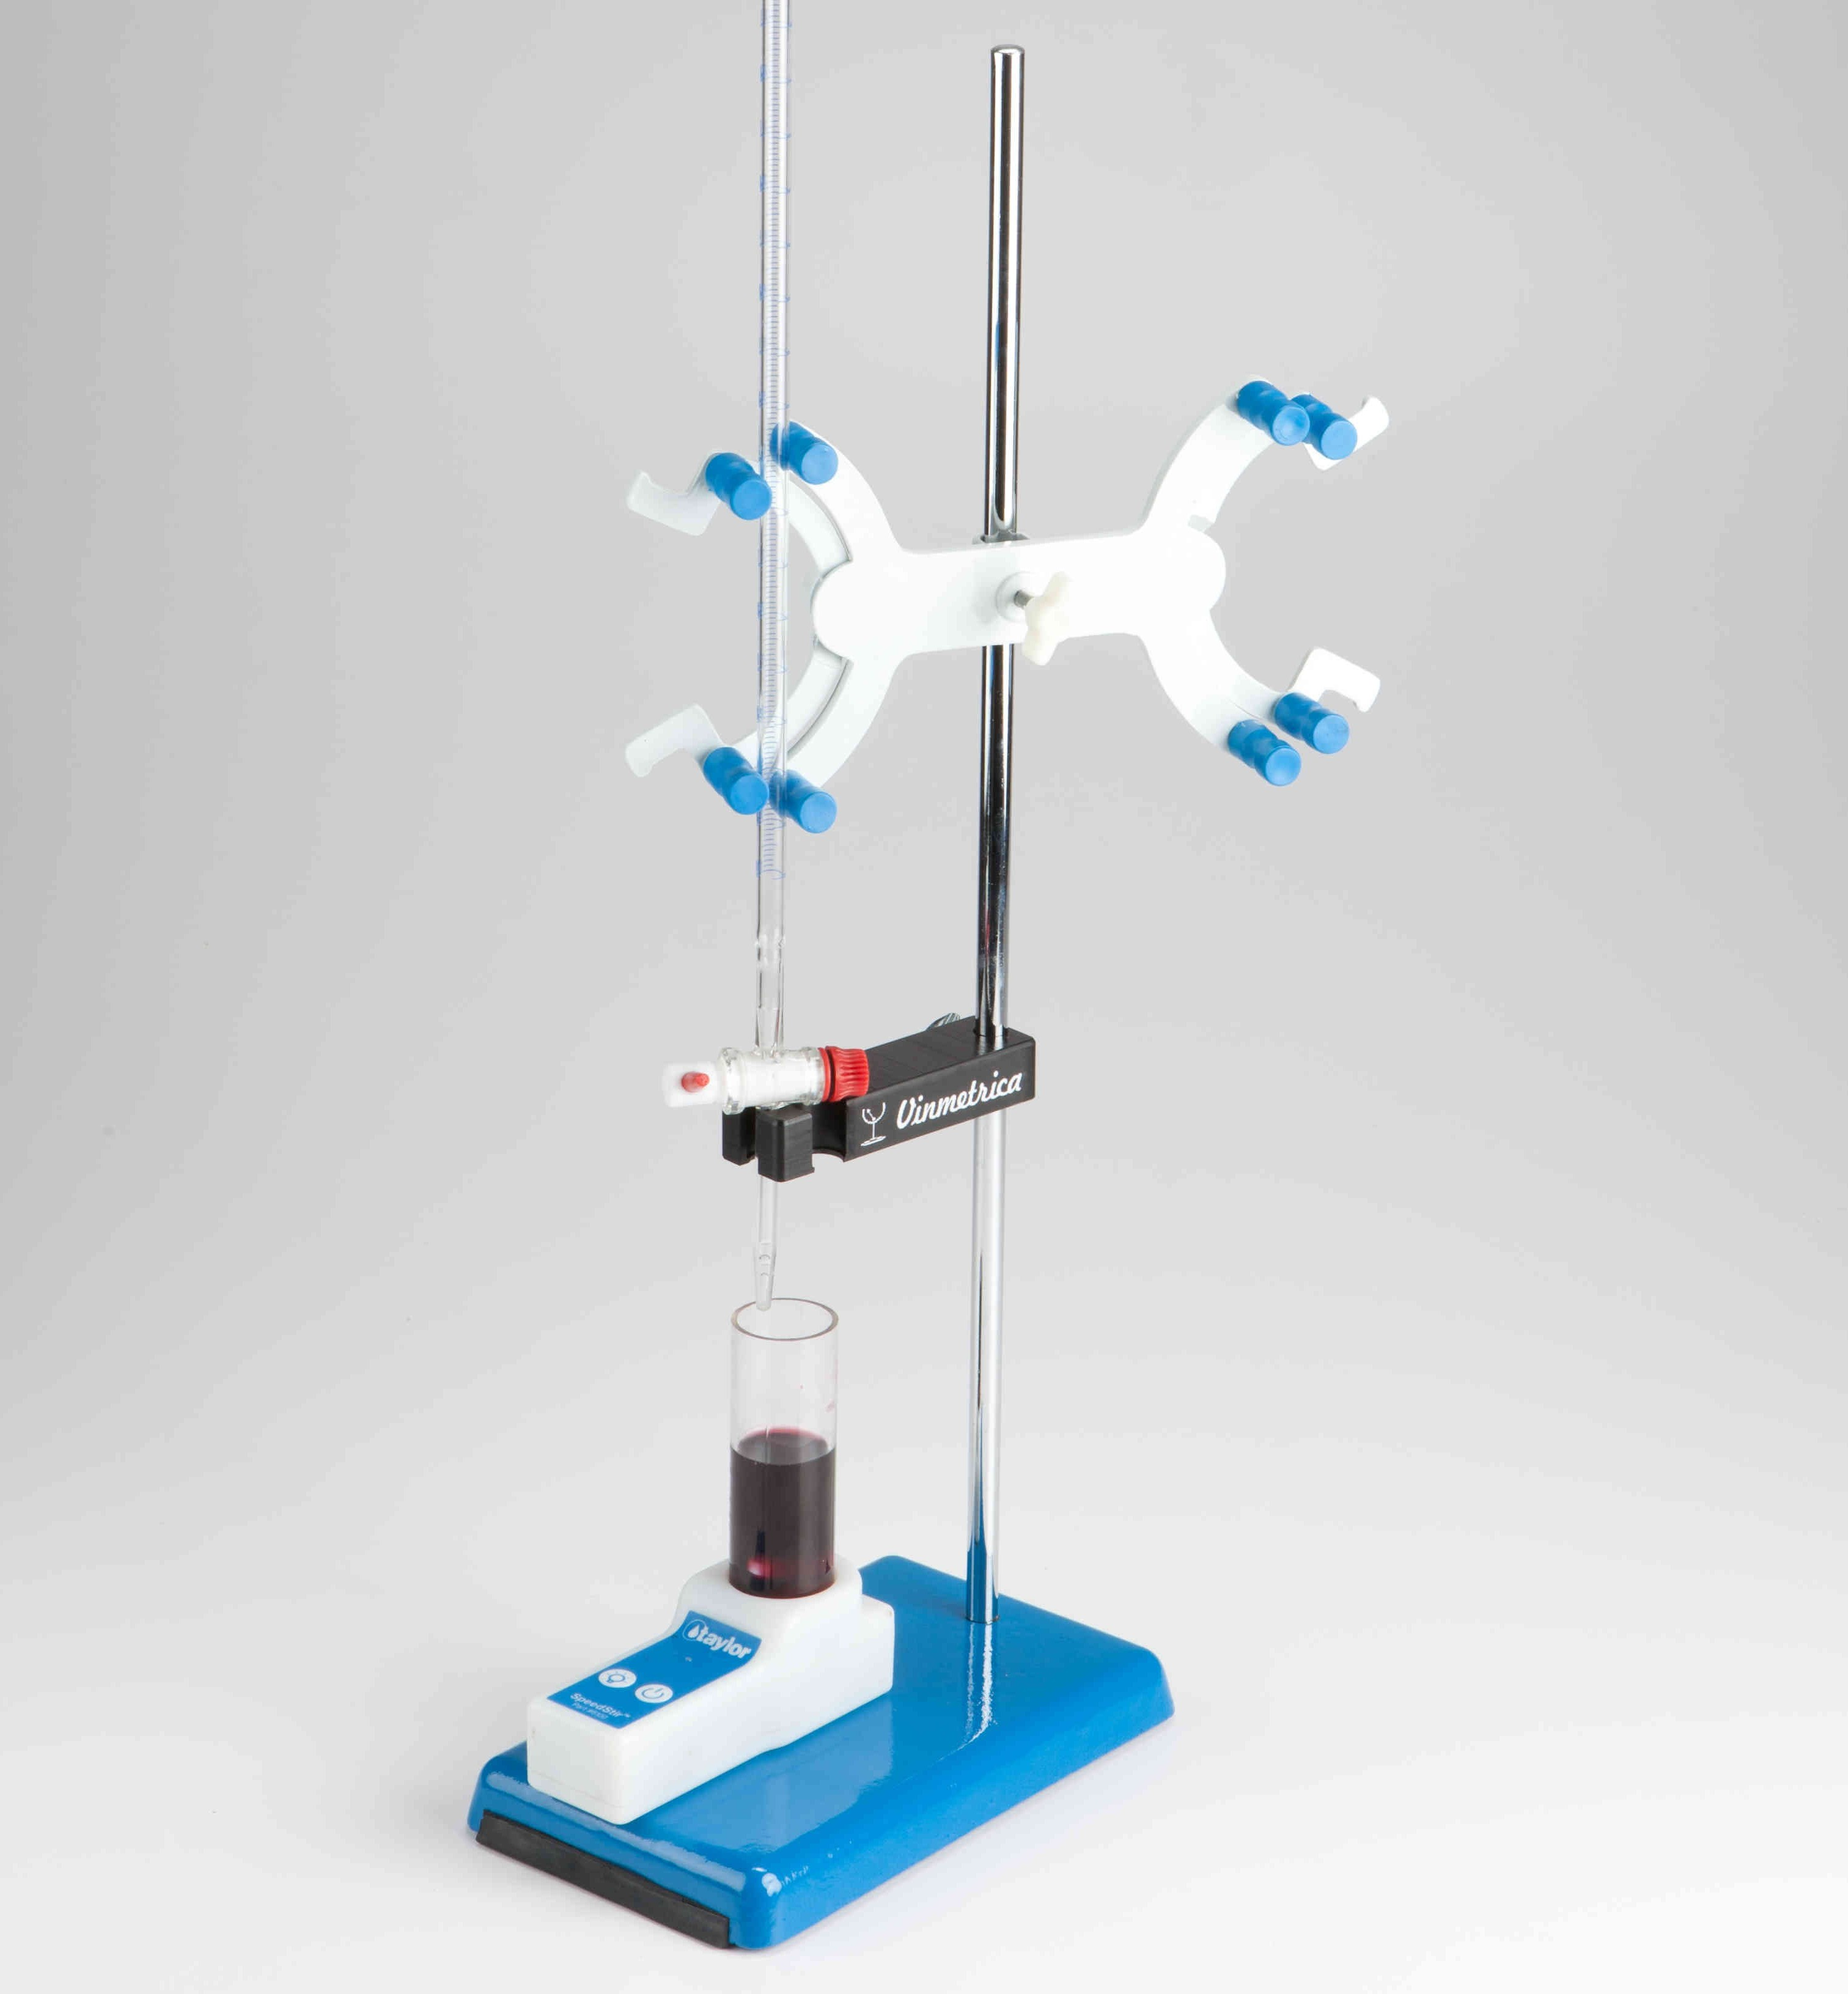 The Deluxe Lab Accessory Kit is a convenient add-on to the Vinmetrica SC line of Analyzers. With the added convenience of a magnetic stirrer, electrode holder, a burette and lab support stand it makes an easy titration even easier!